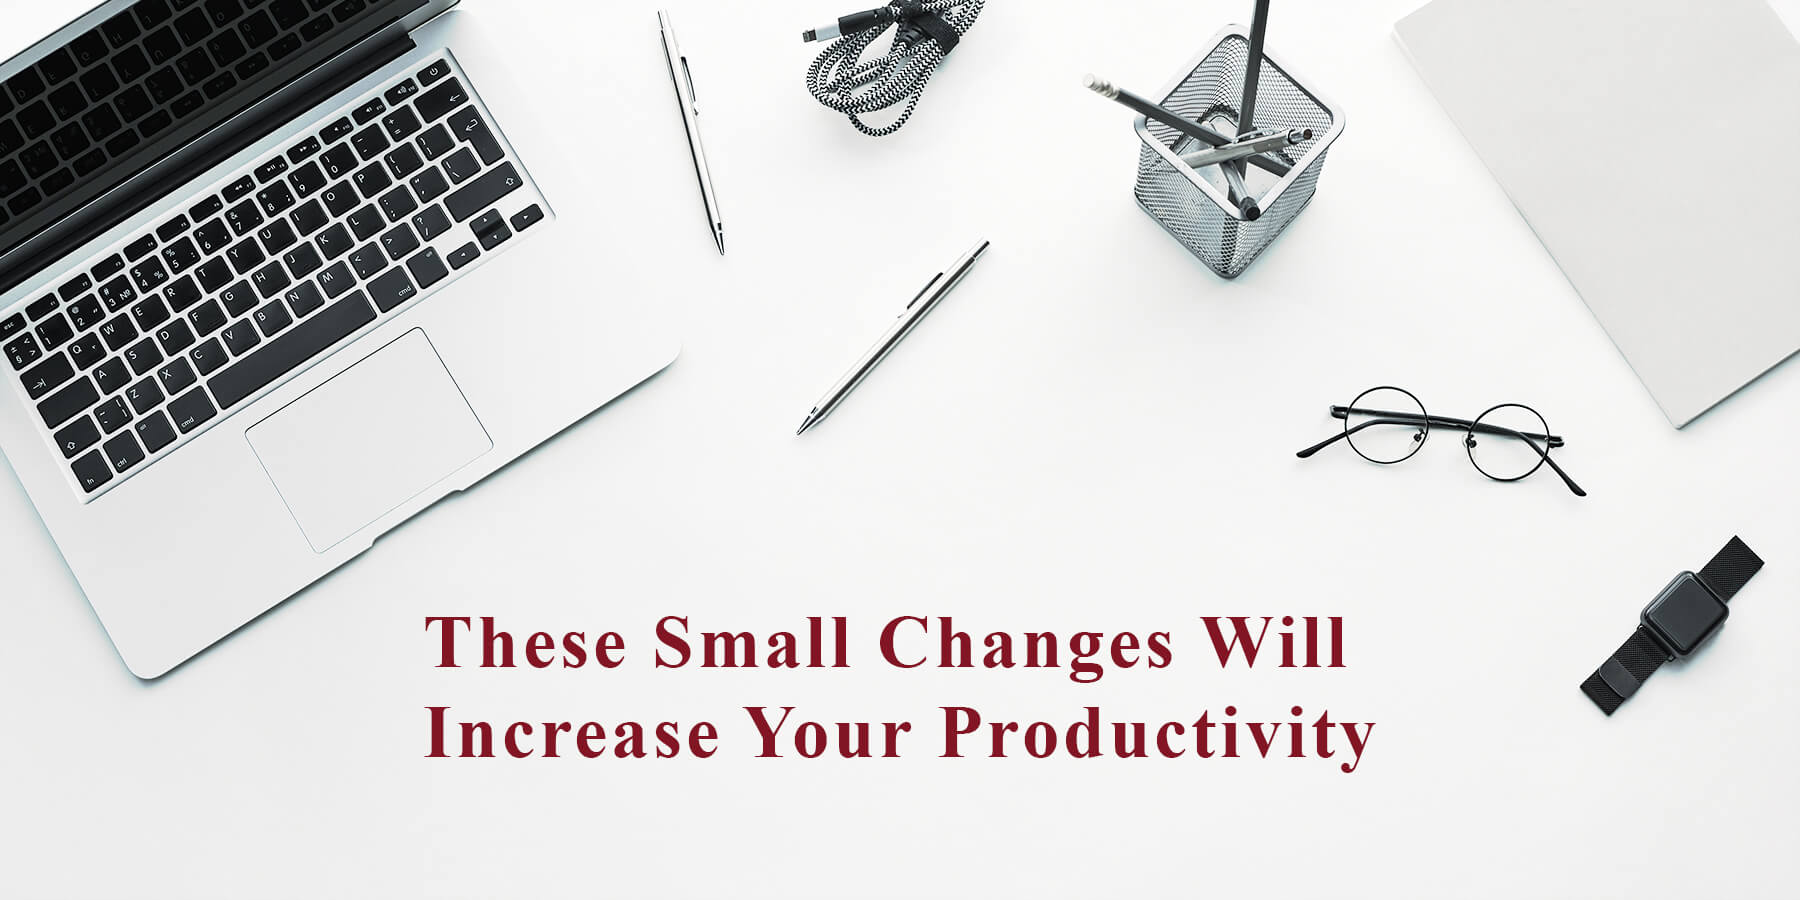 5 TIPS TO IMPROVE YOUR PRODUCTIVITY IN YOUR WORK